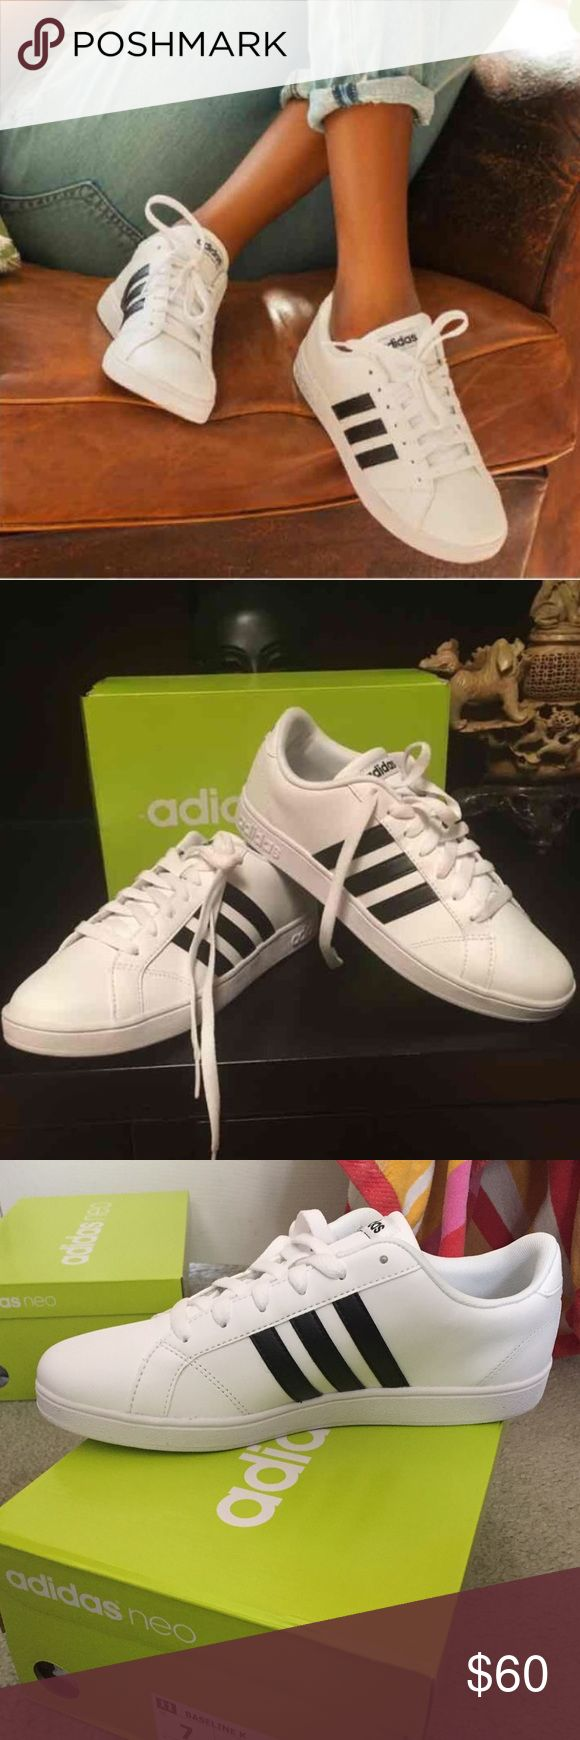 Adidas baseline white sneakers women's size 8 These youth size 7 sneakers are equivalent to a women's size 8. Brand new with box! Like Superstar Adidas Shoes Sneakers